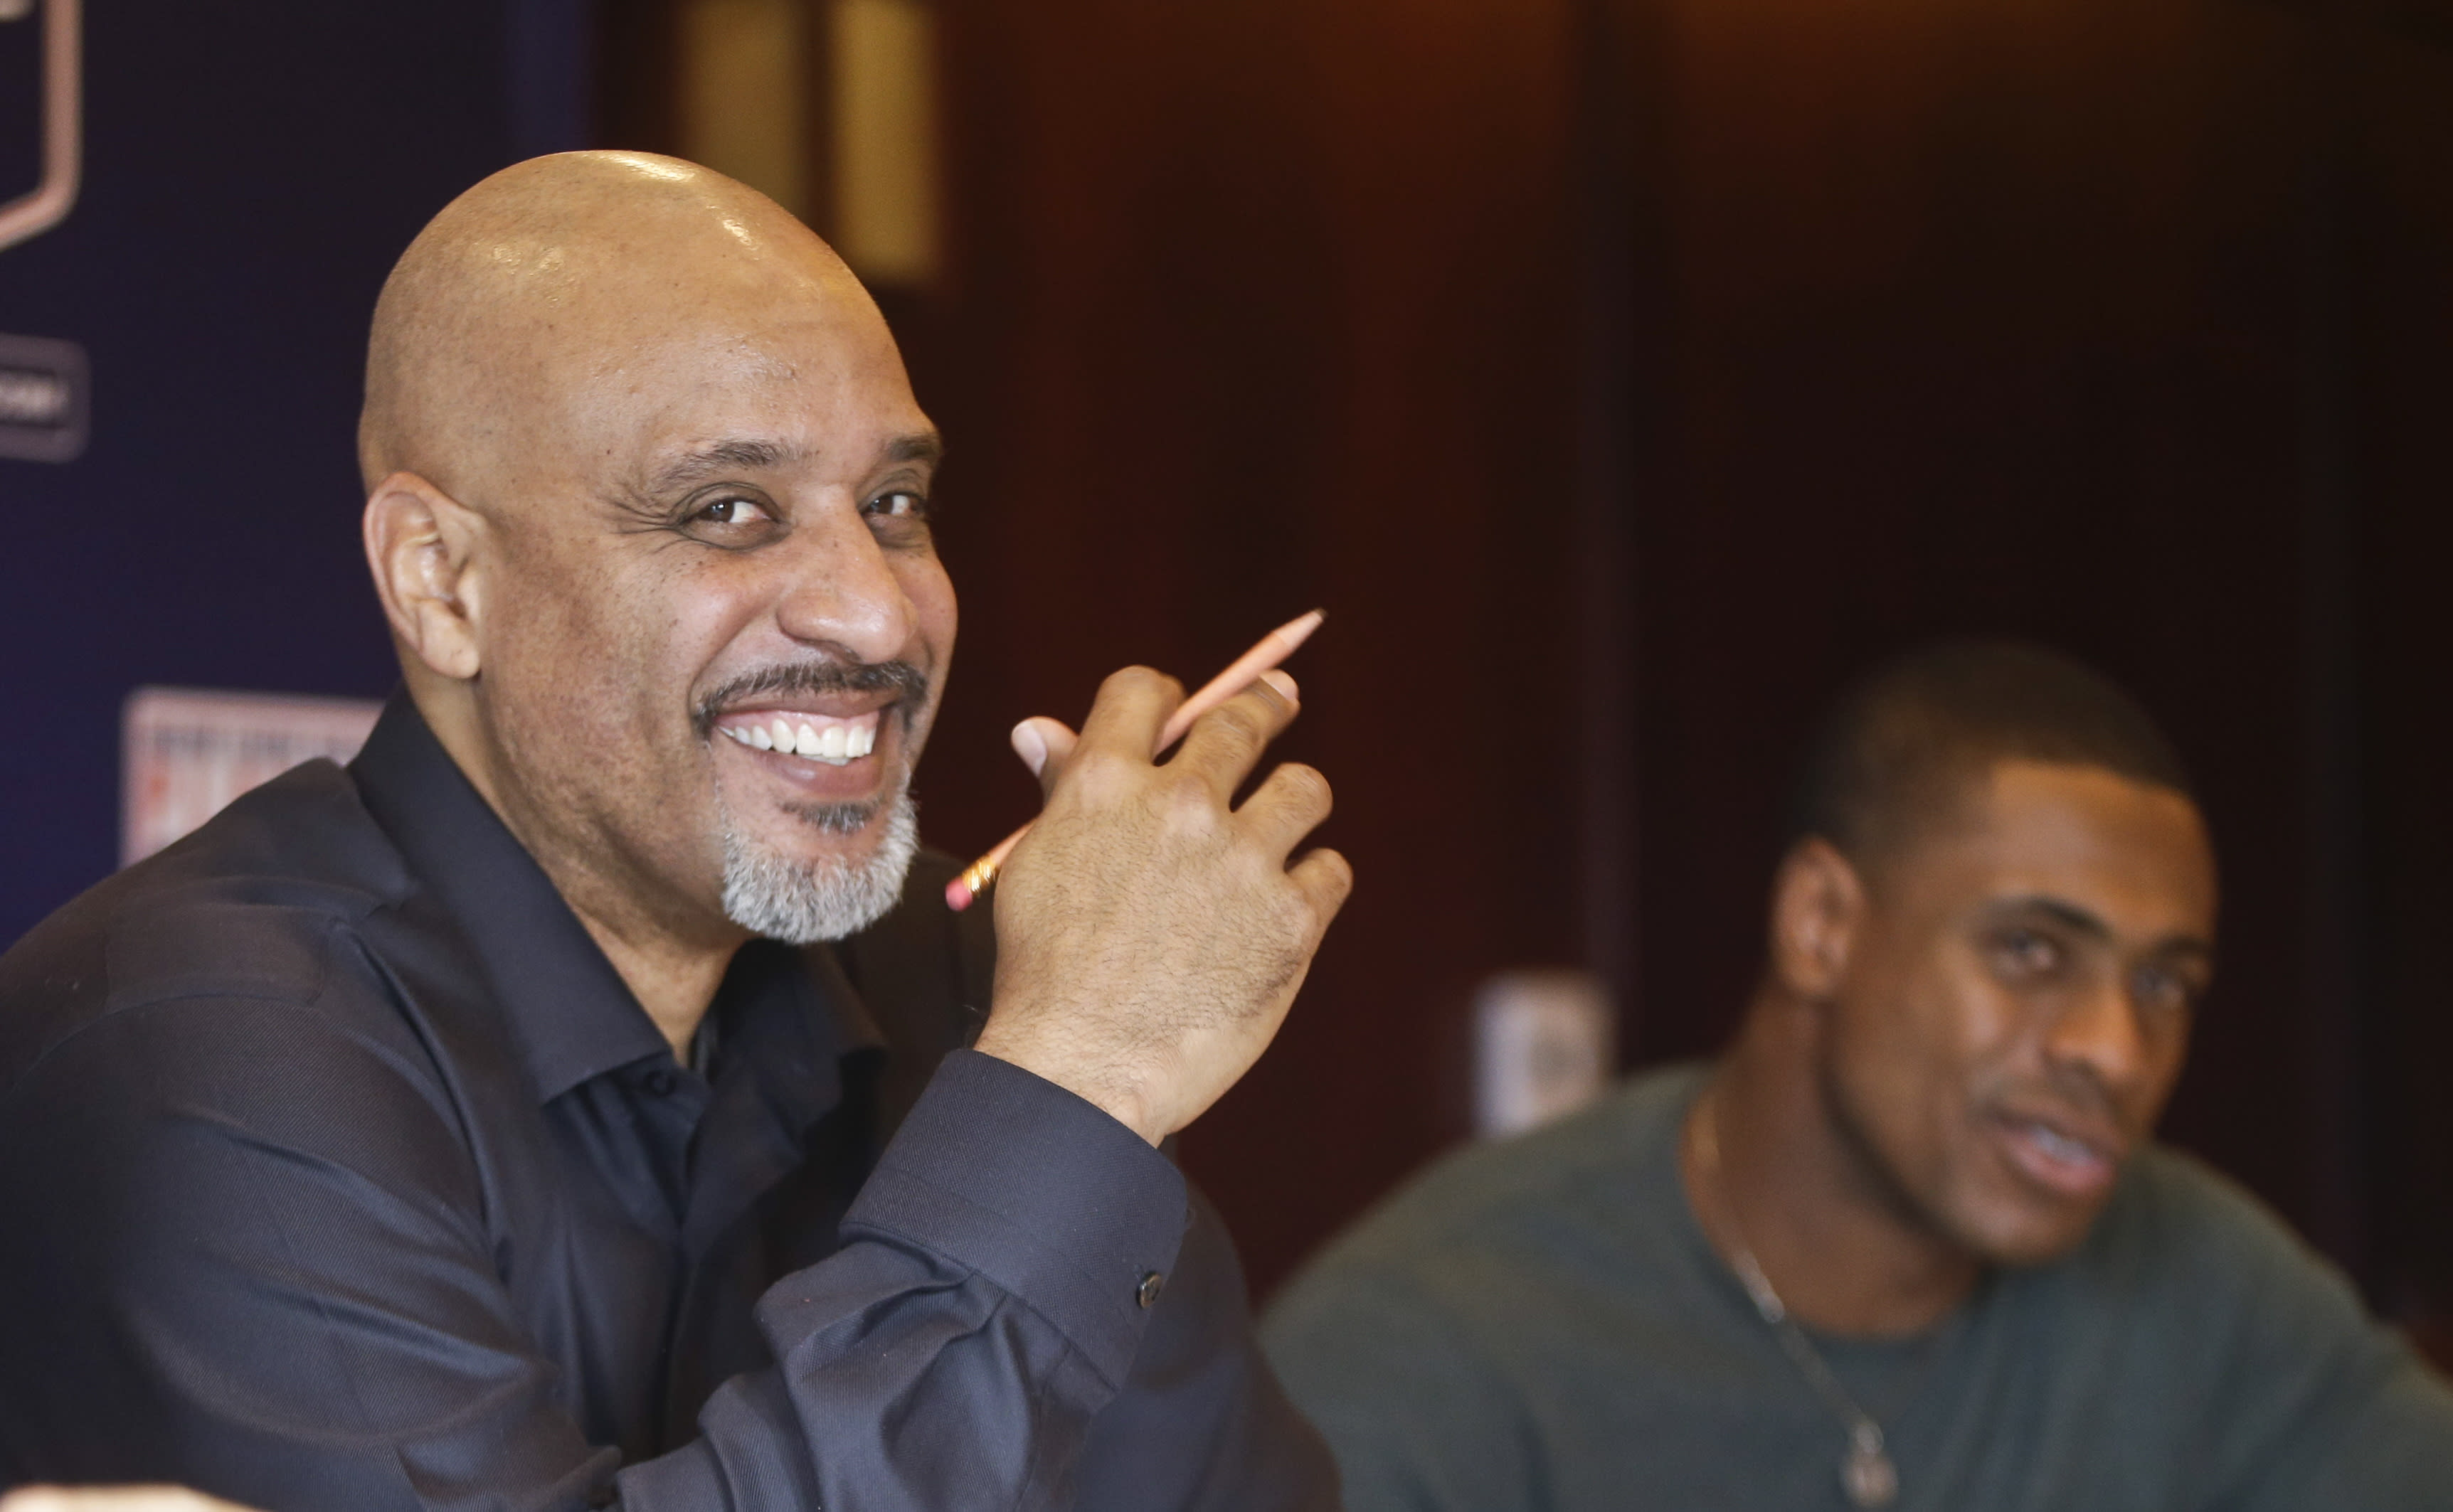 Tony Clark, left, the newly named Executive Director of the Major League Baseball Players Association, finds humor in a question during a news conference at the organizations' annual meeting Tuesday, Dec. 3, 2013, in San Diego. Clark, who replaced the late Michael Weiner, is flanked by executive board member Curtis Granderson. (AP Photo/Lenny Ignelzi)